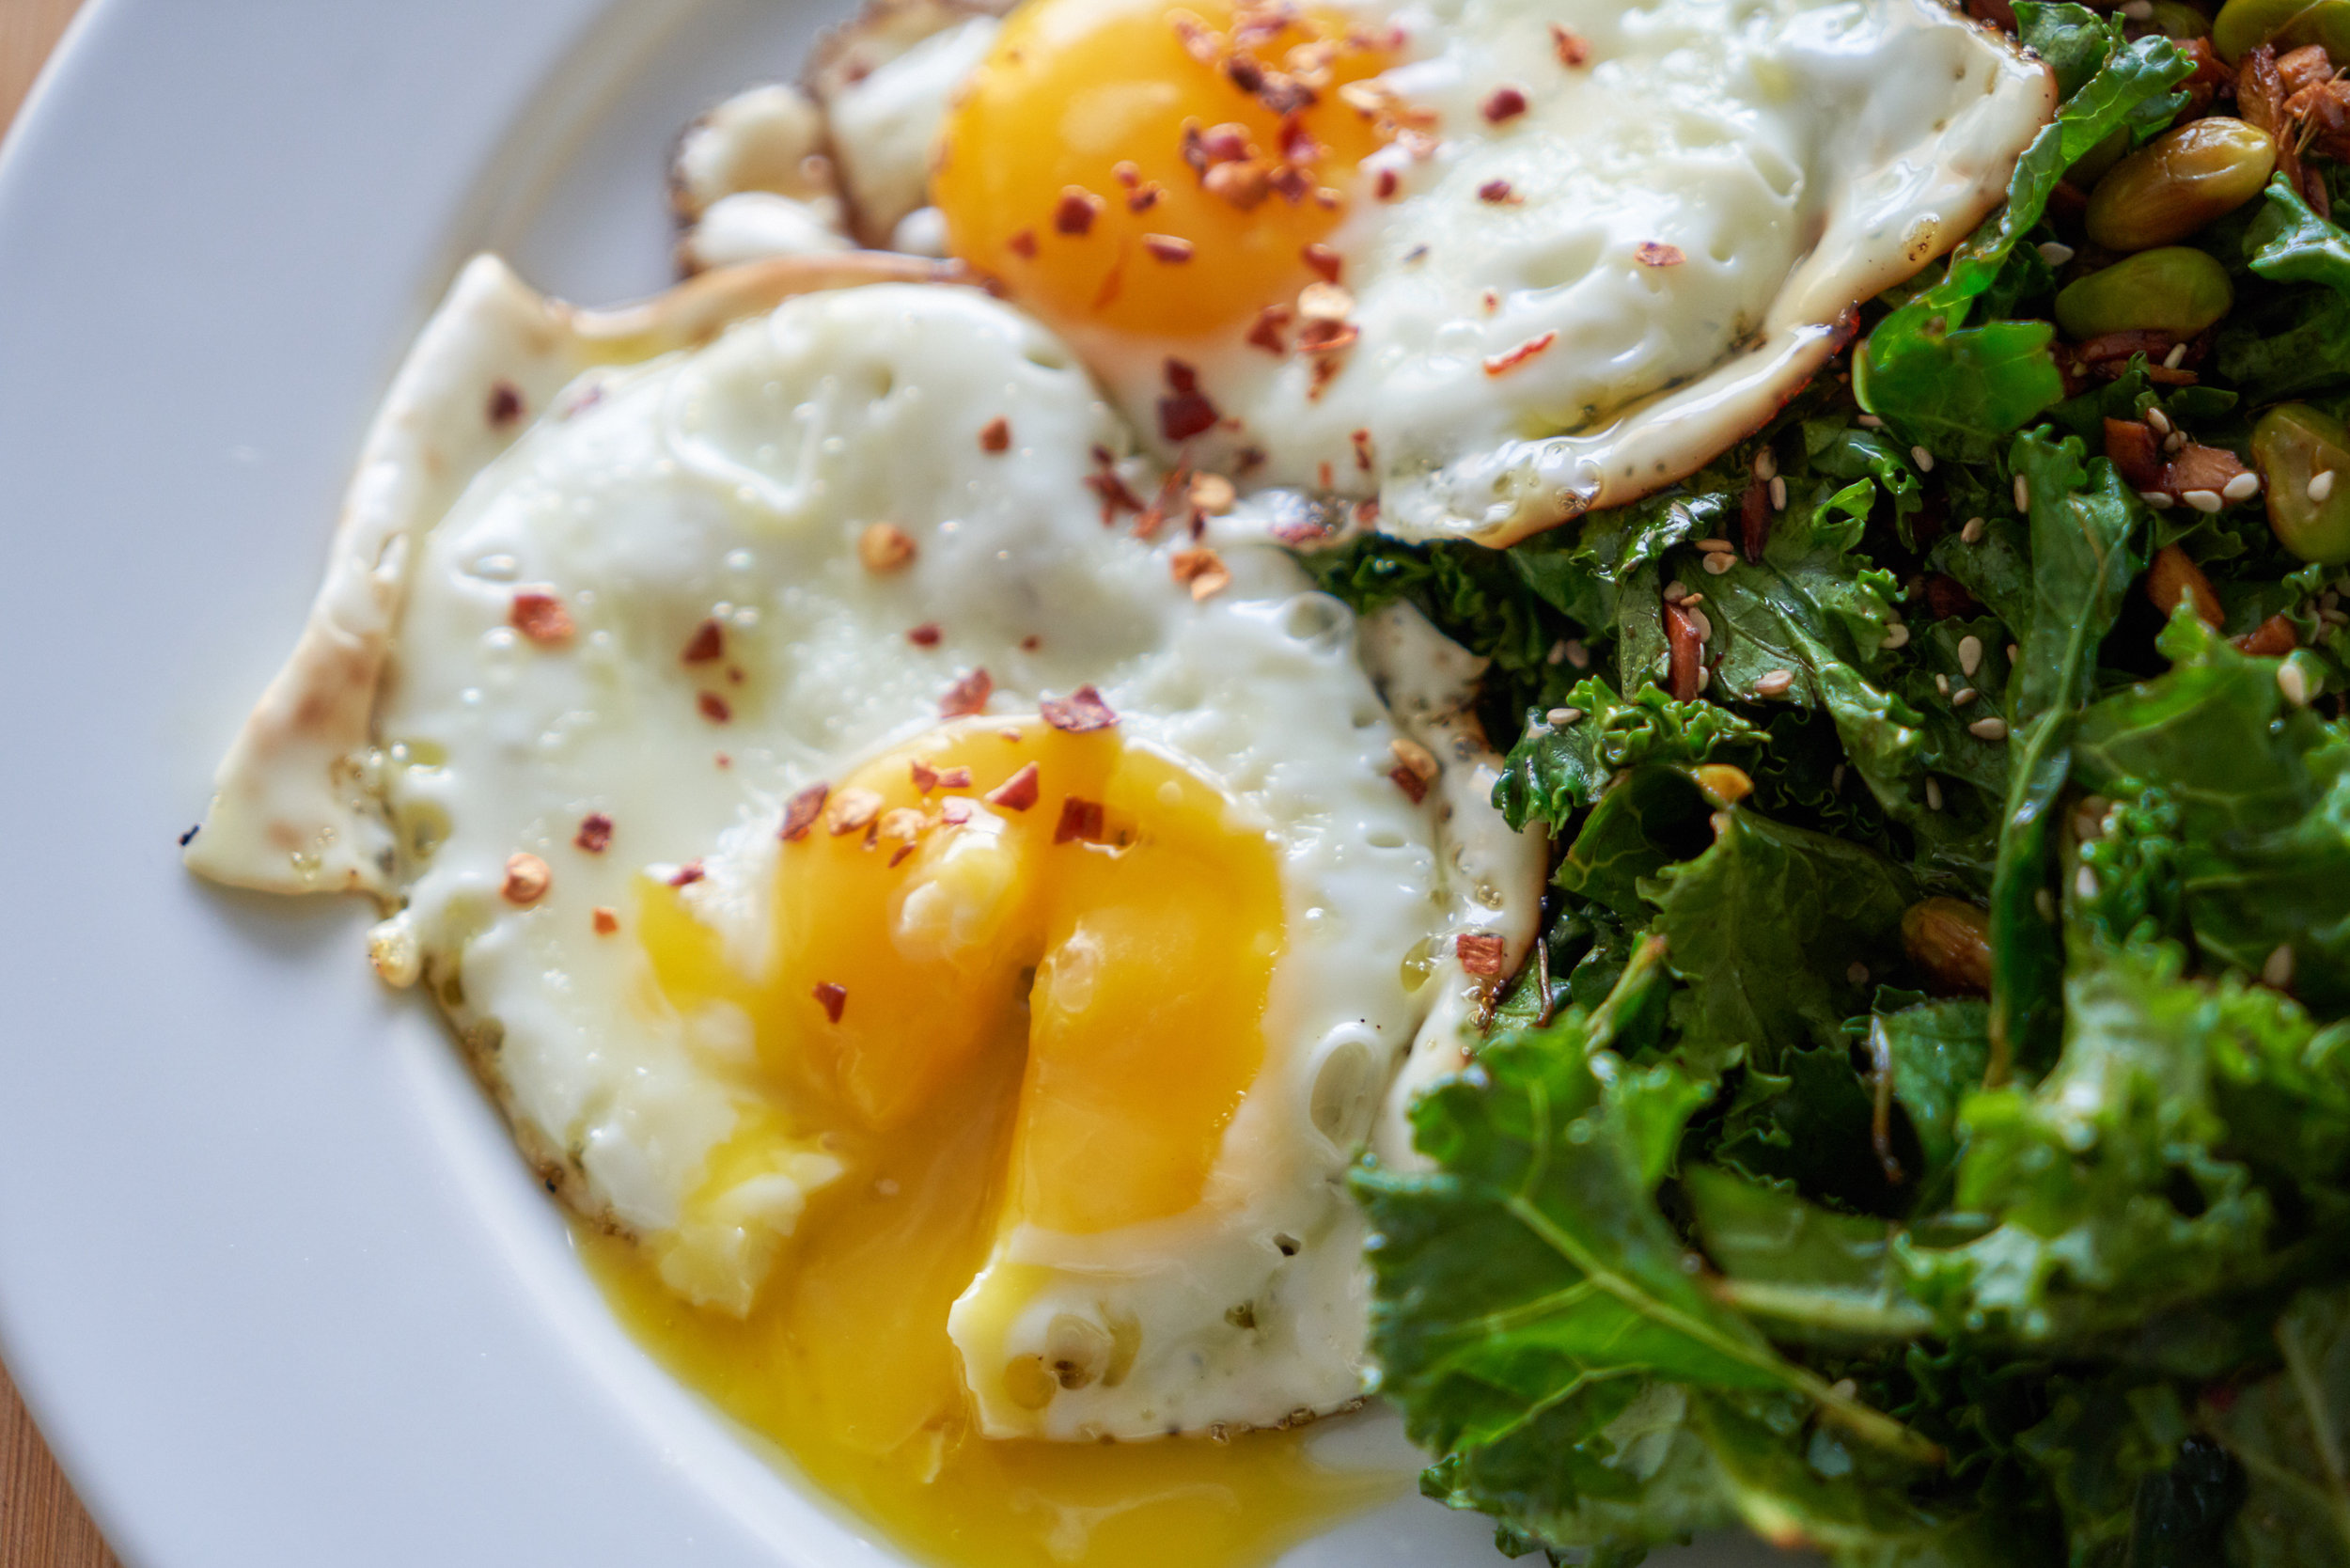 Meat-Free Monday Meal Prep | Full Day Meal Plan - lunch: fried eggs with sautéed kale, edamame beans and ginger | In Carina's Kitchen